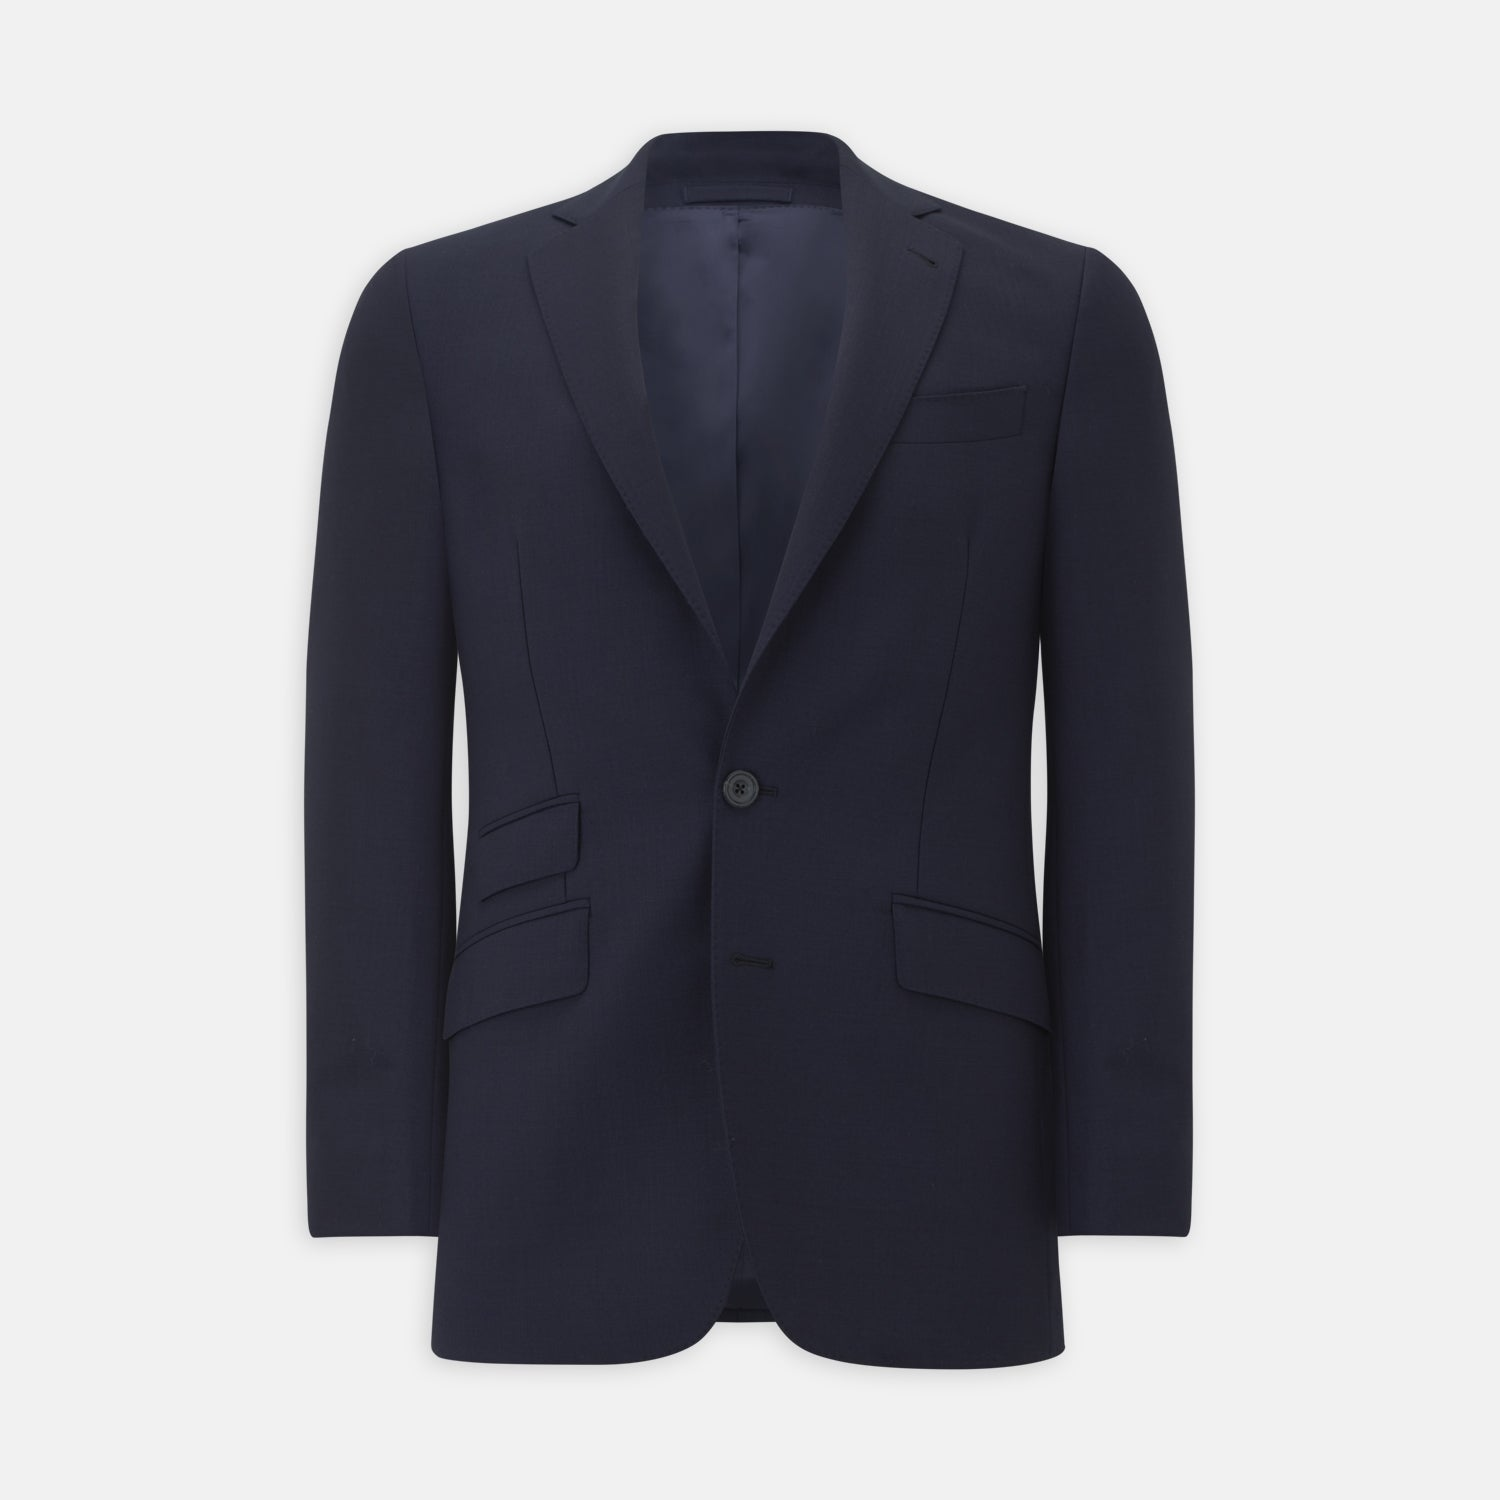 Navy Lightweight Wool Tonik Jacket - 44 from Turnbull & Asser